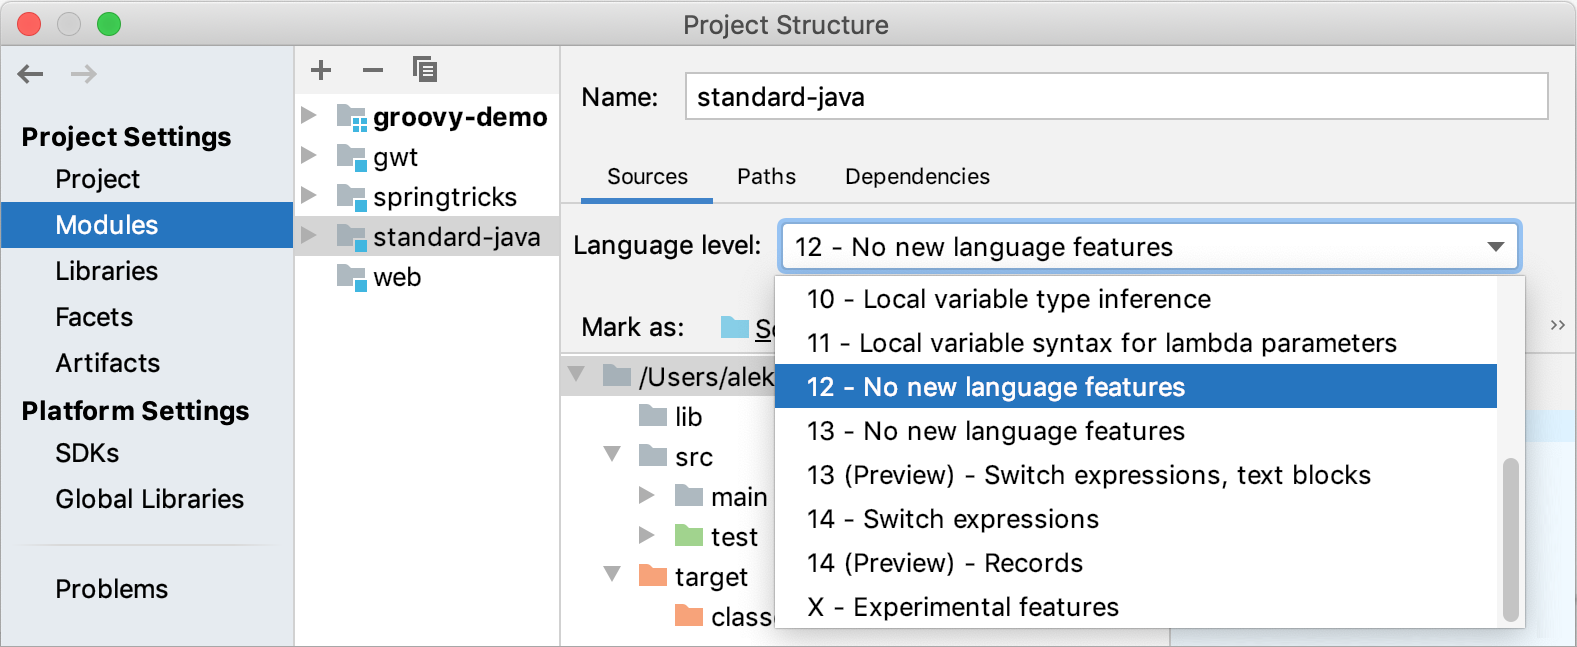 Specifying the module language level